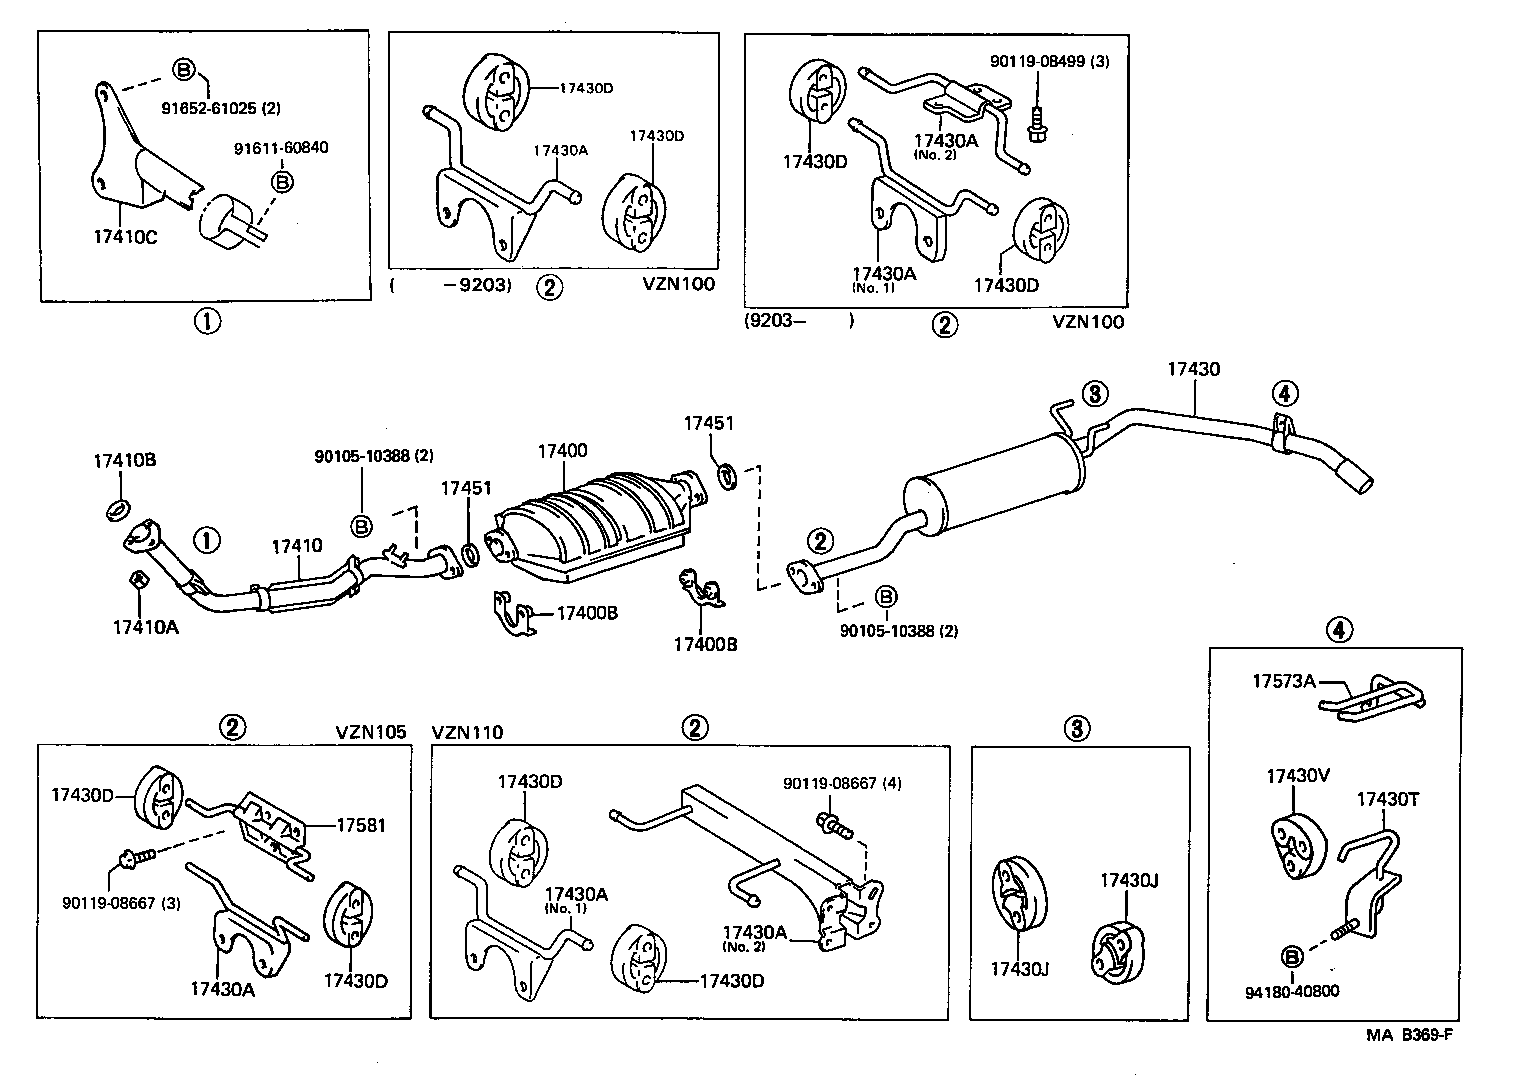 Mazda B2200 Vacuum Diagram also 1988 Mazda Rx 7 Starter Location further Mazda Rotary Engine Diagram further 1984 Nissan 300zx Vacuum Diagrams besides 91 Toyota Pickup 22re Wiring Diagram. on 1987 mazda rx 7